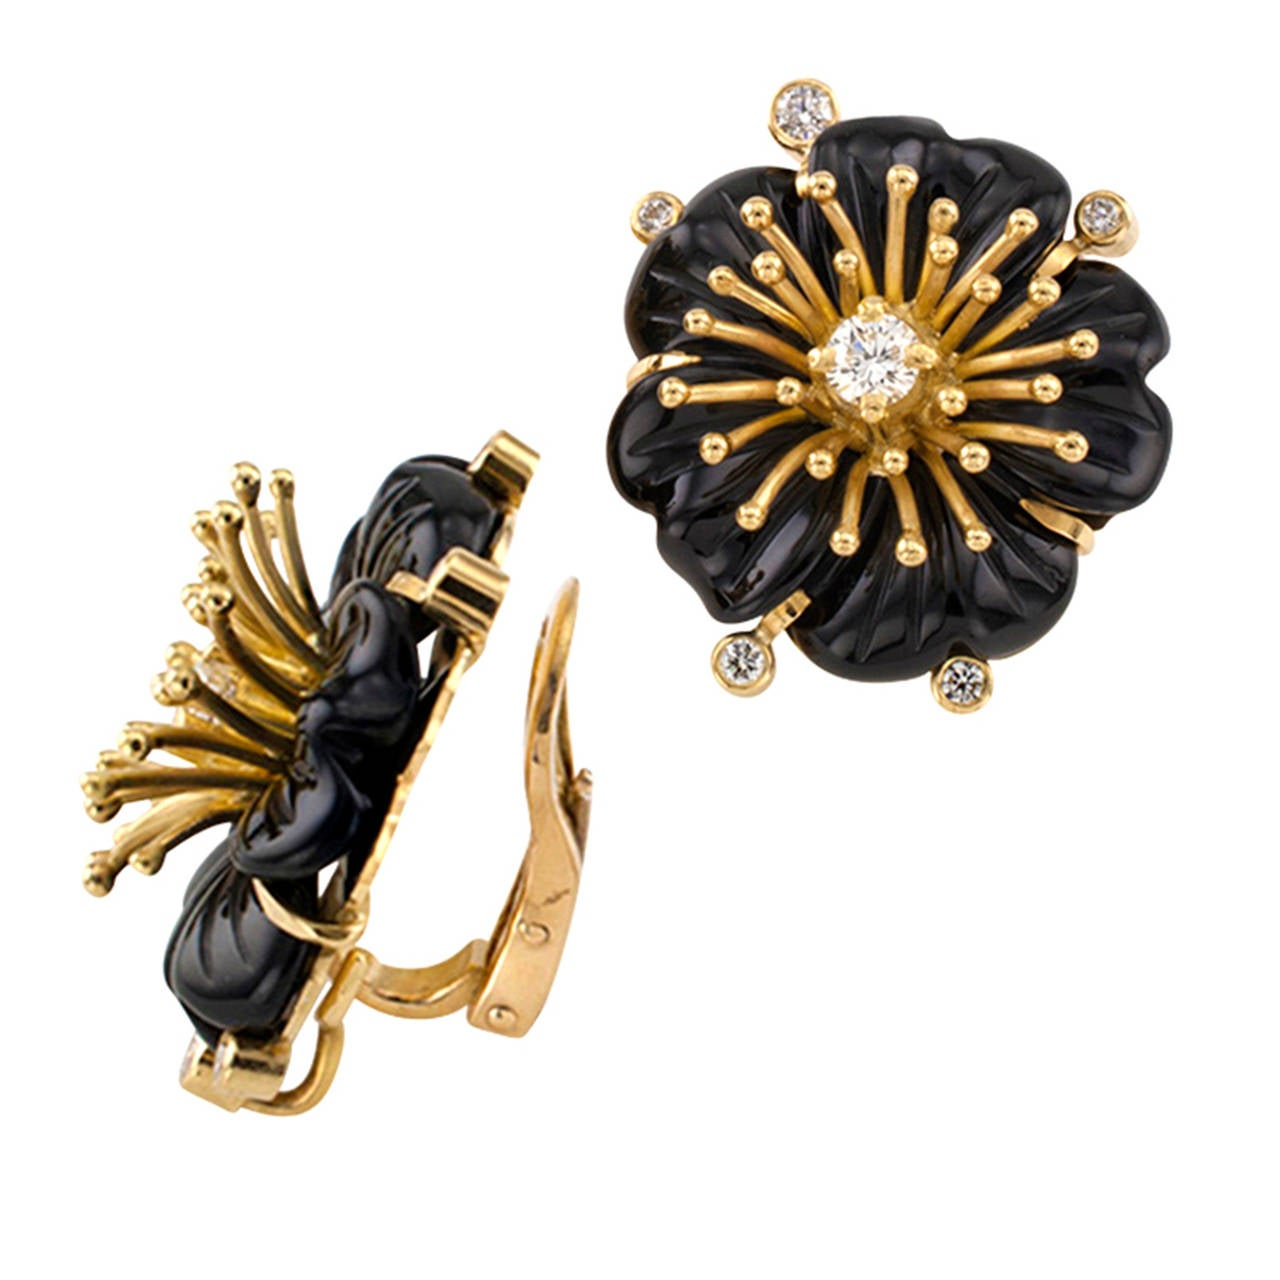 Carved Black Onyx And Diamond Flower Earrings 2